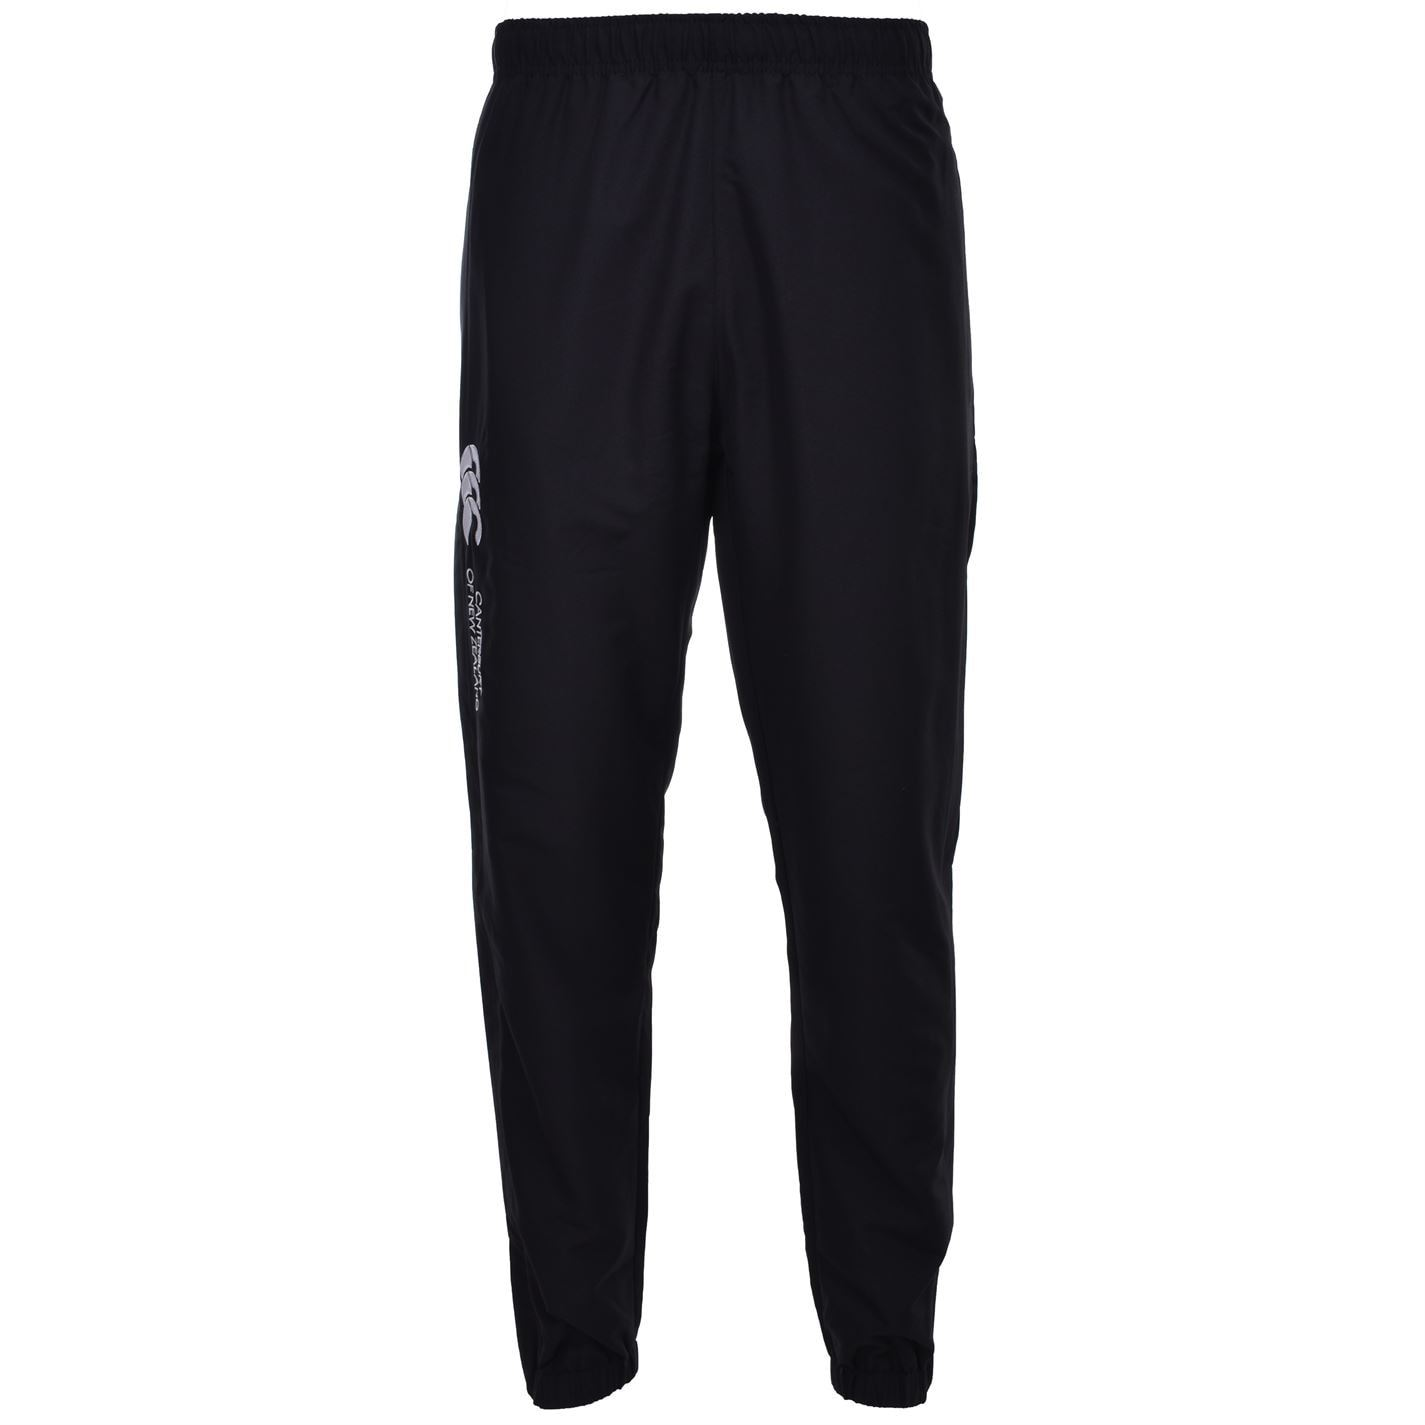 Canterbury-Cuffed-Stadium-Tracksuit-Pants-Mens-Rugby-Sweatpants-Fan-Bottoms thumbnail 5